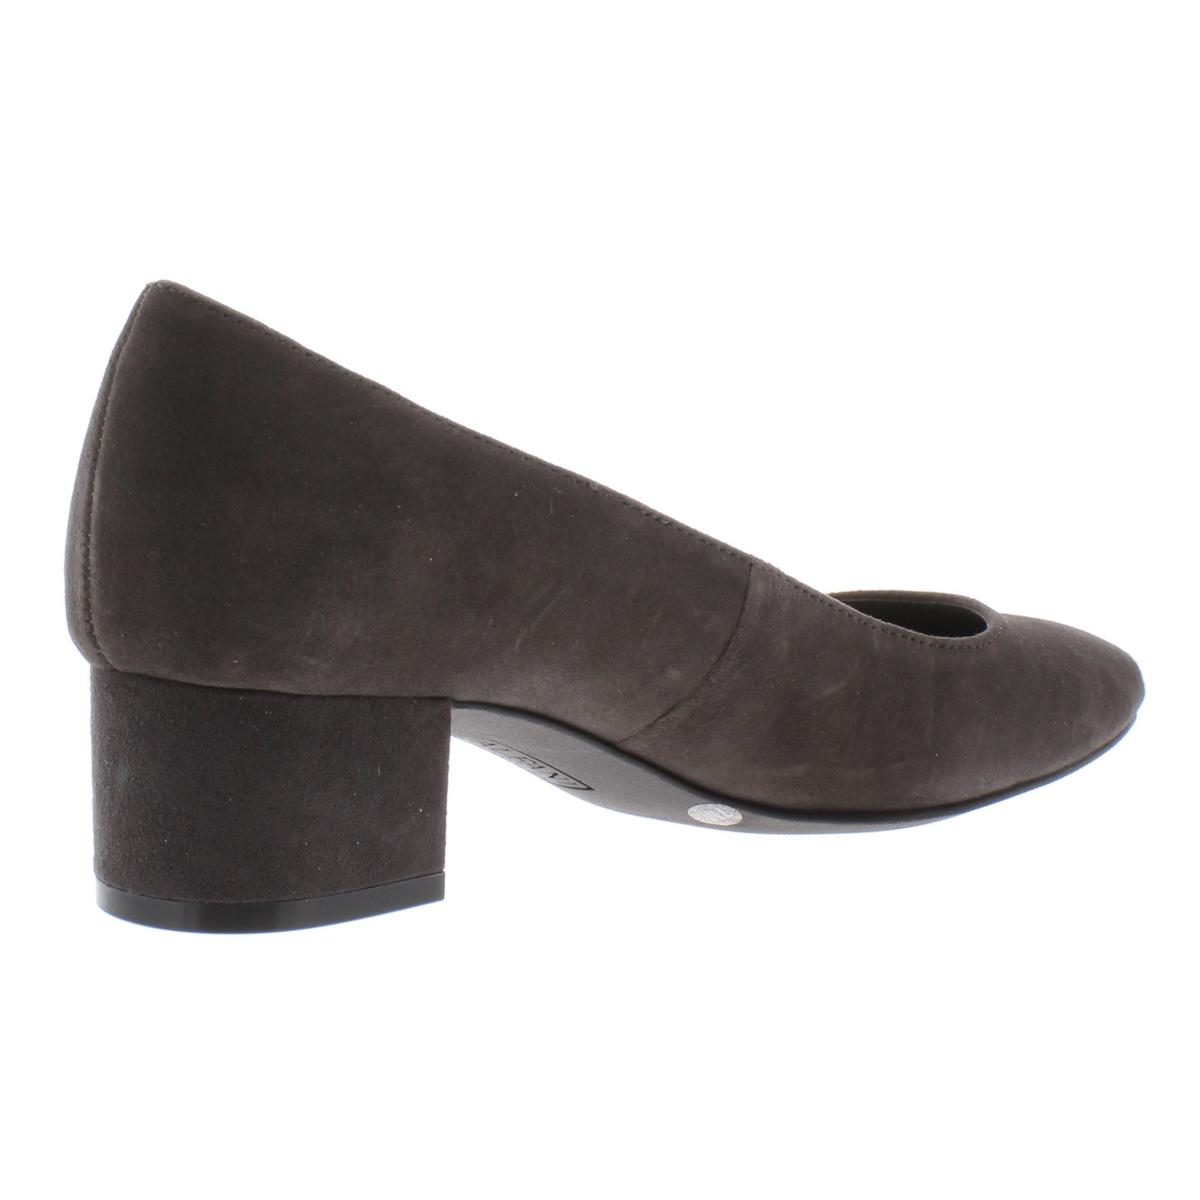 Alfani-Womens-Daleah-Padded-Insole-Block-Heel-Almond-Toe-Pumps-Shoes-BHFO-4725 thumbnail 4